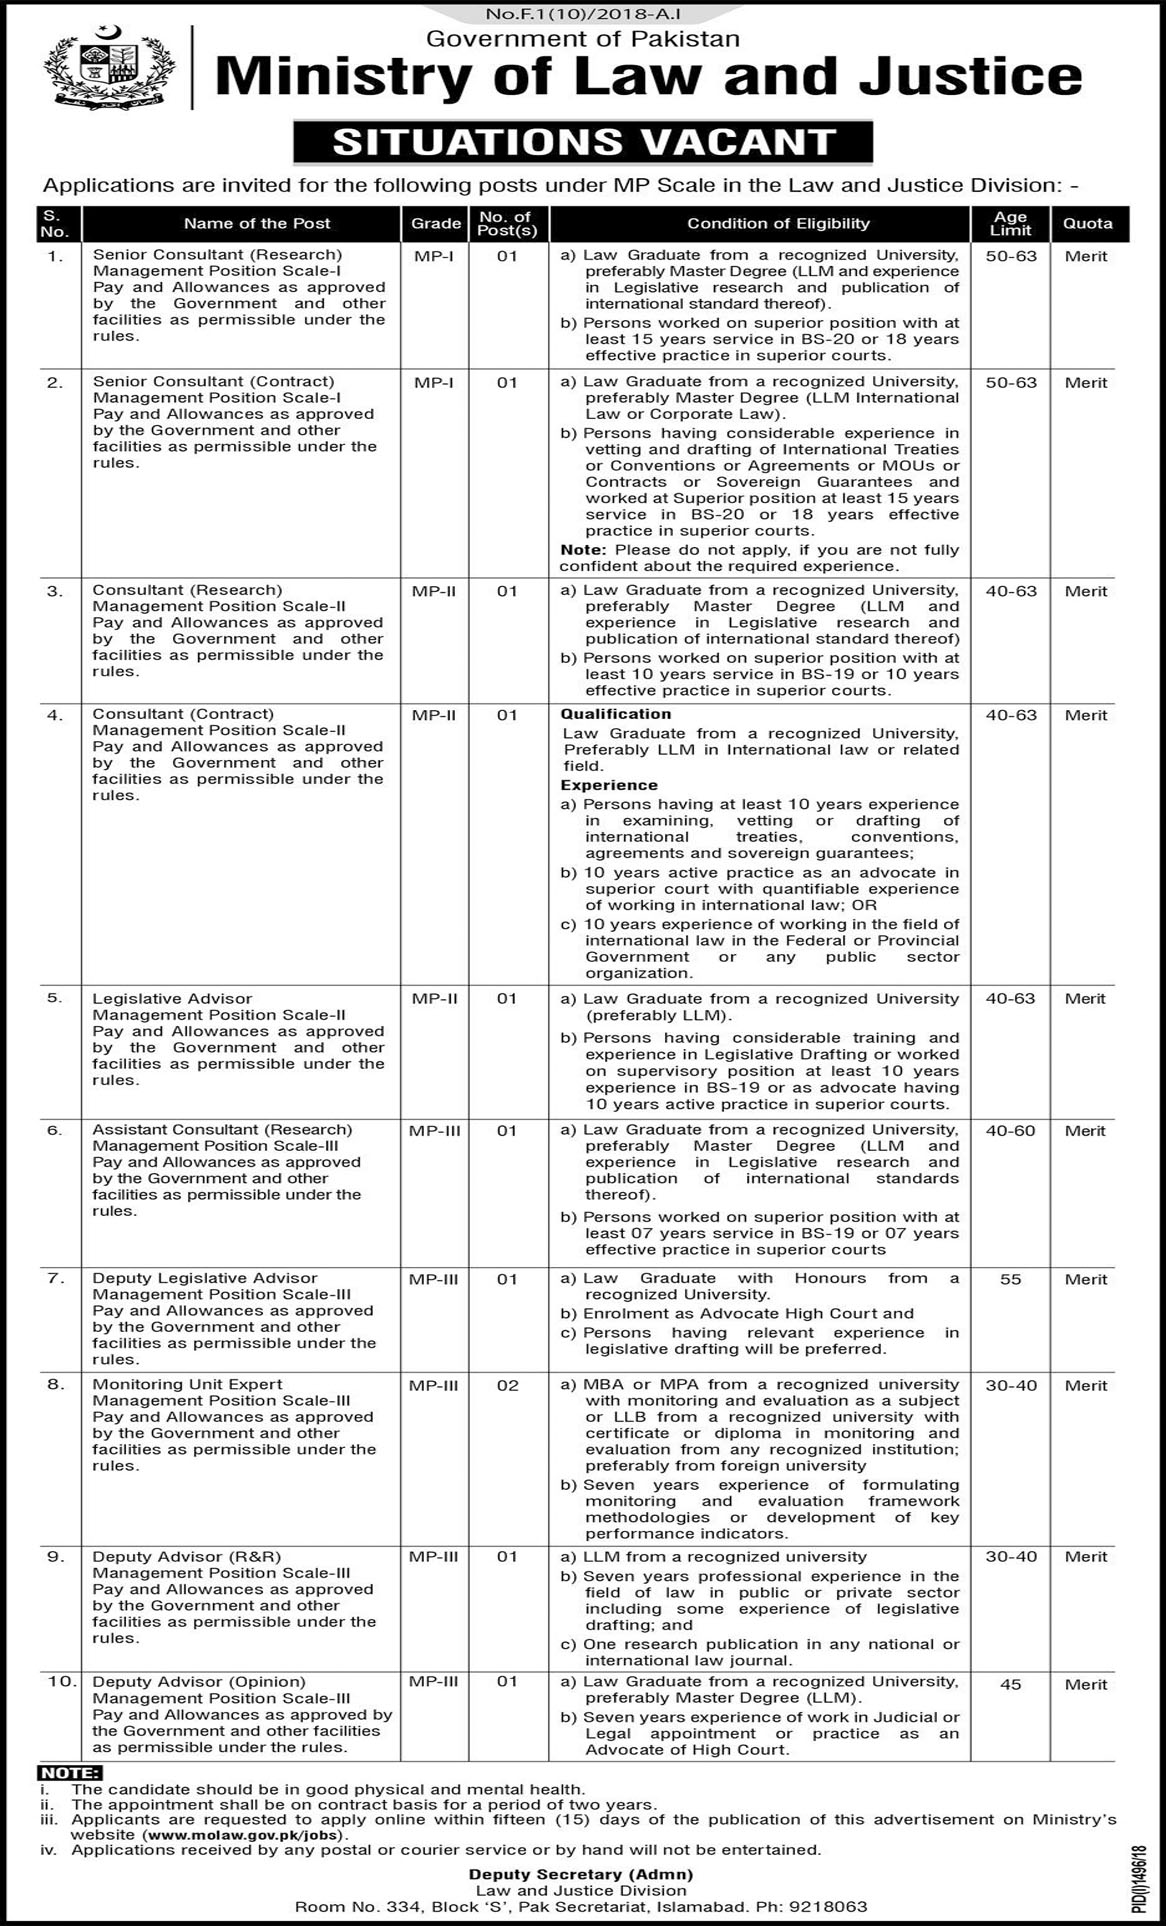 Jobs In Ministry Of Law And Justice Govt Of Pakistan 02 Oct 2018